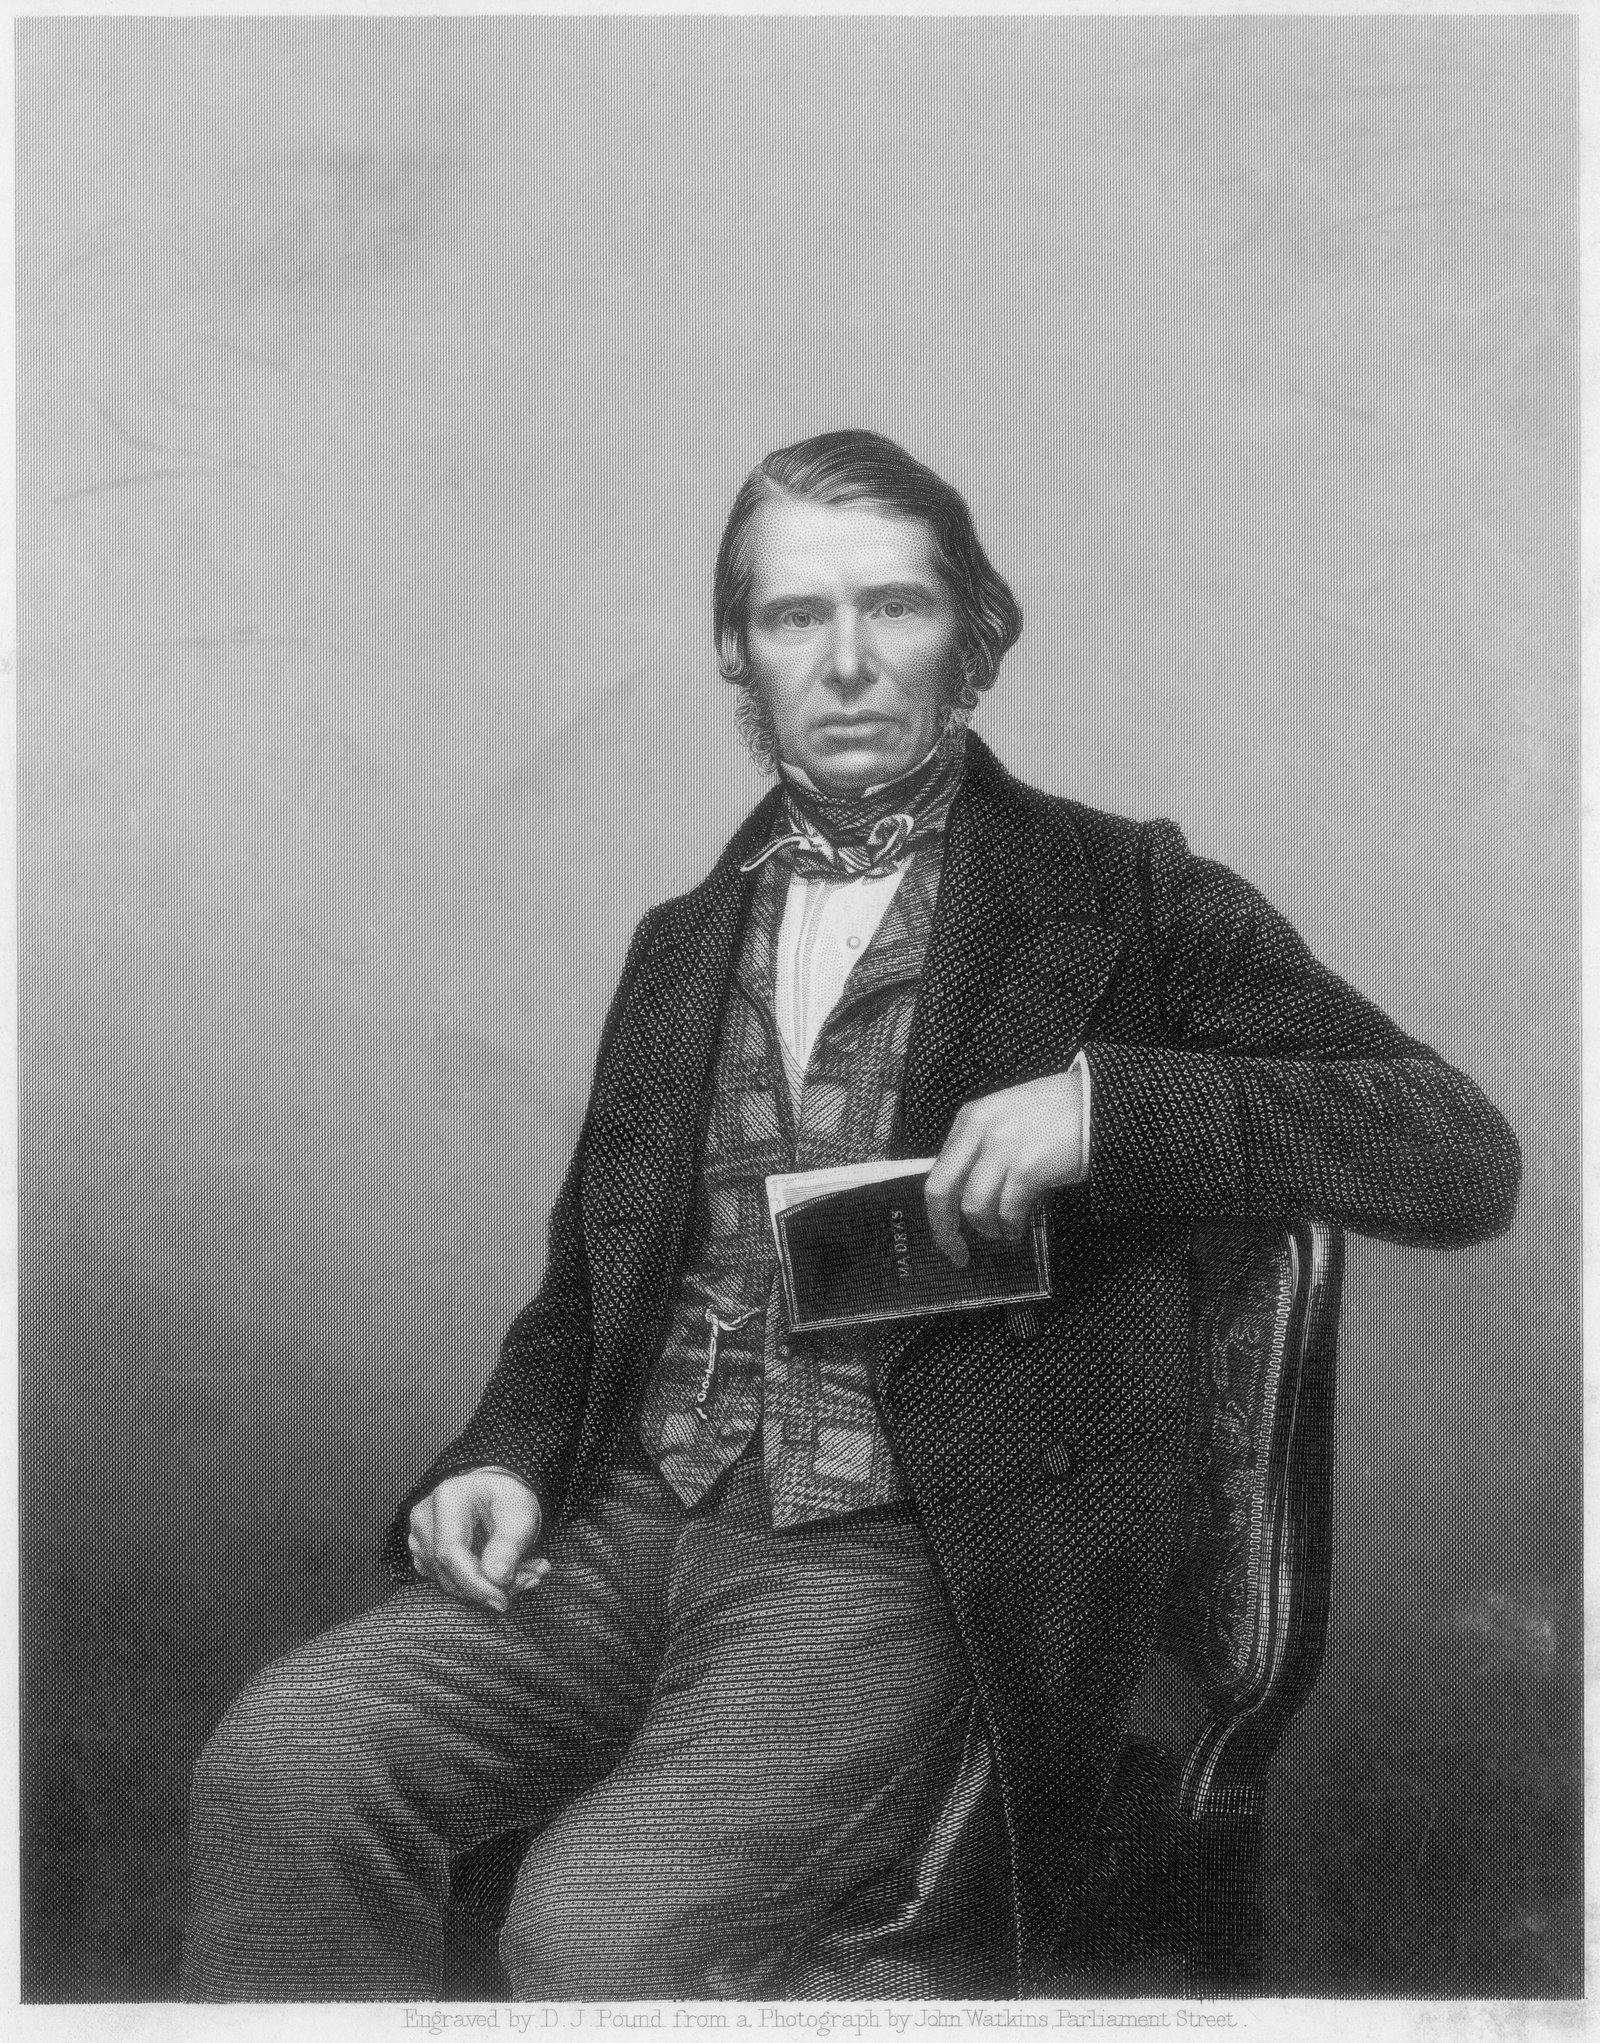 Image - Charles Edward F. Trevelyan, K.C.B. Engraved by D.J. Pound from a photograph by John Watkins, Parliament Street. Source: Getty Images/Bettmann